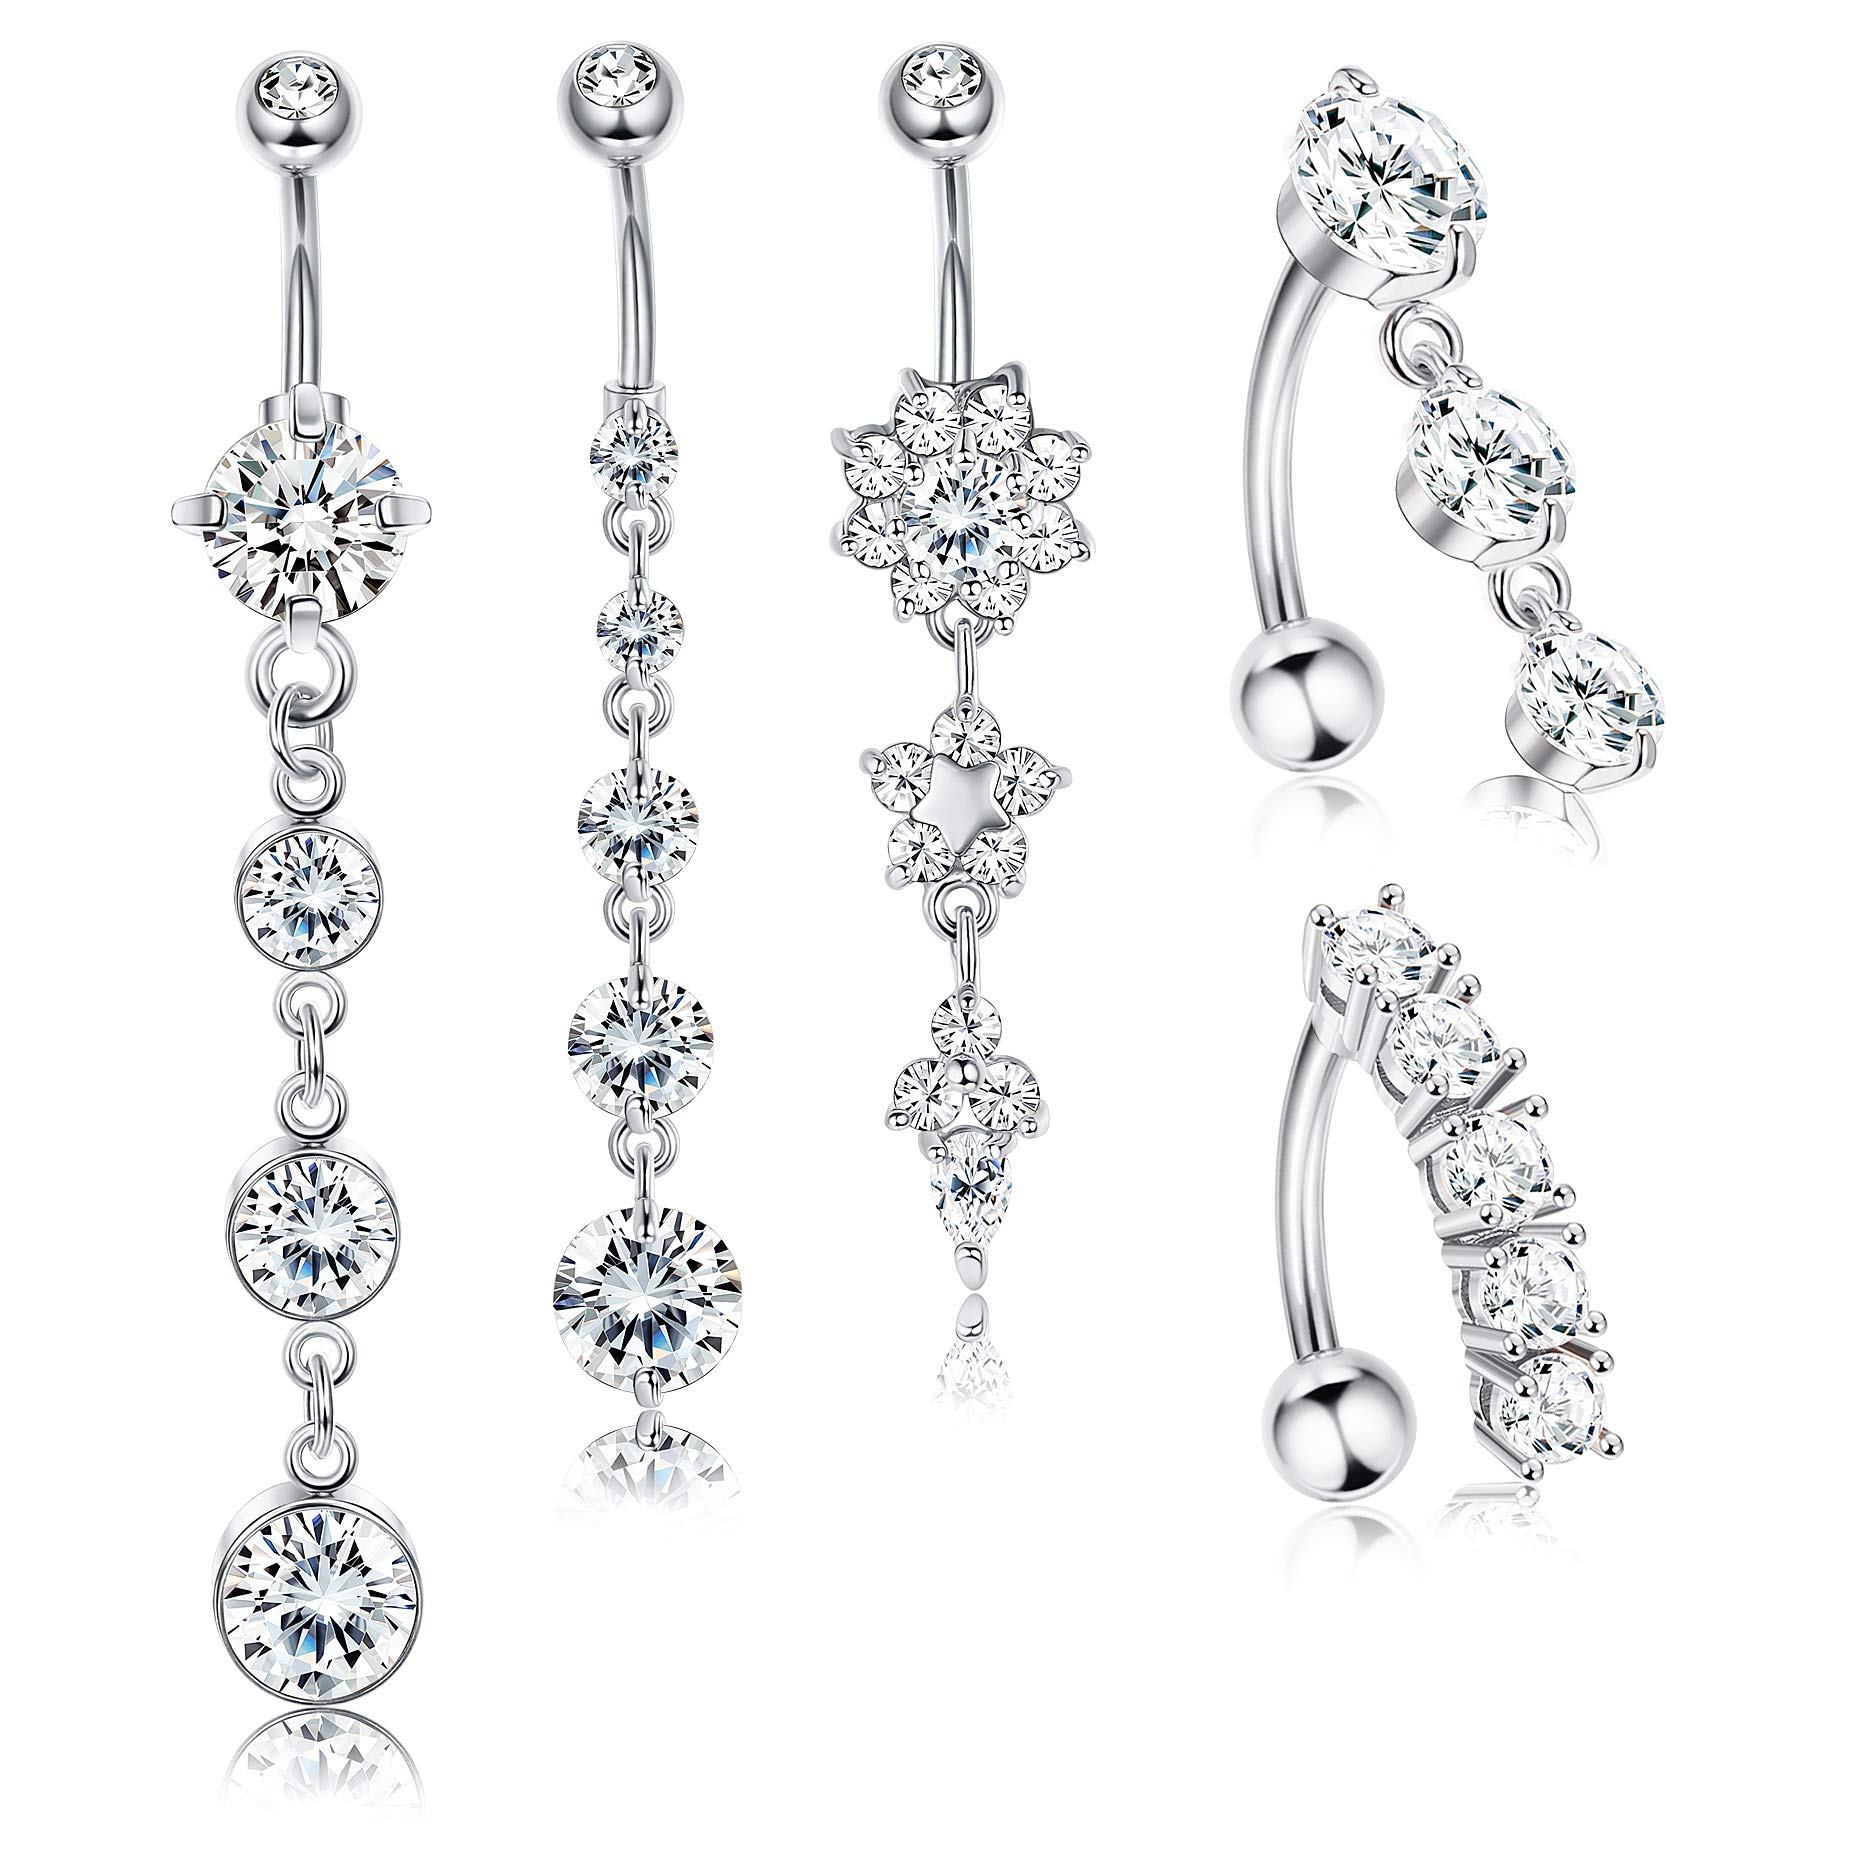 Jstyle 5Pcs 14G Stainless Steel Dangle Belly Button Rings for Women Girls Reverse Navel Rings Curved Barbell CZ Body Piercing by Jstyle